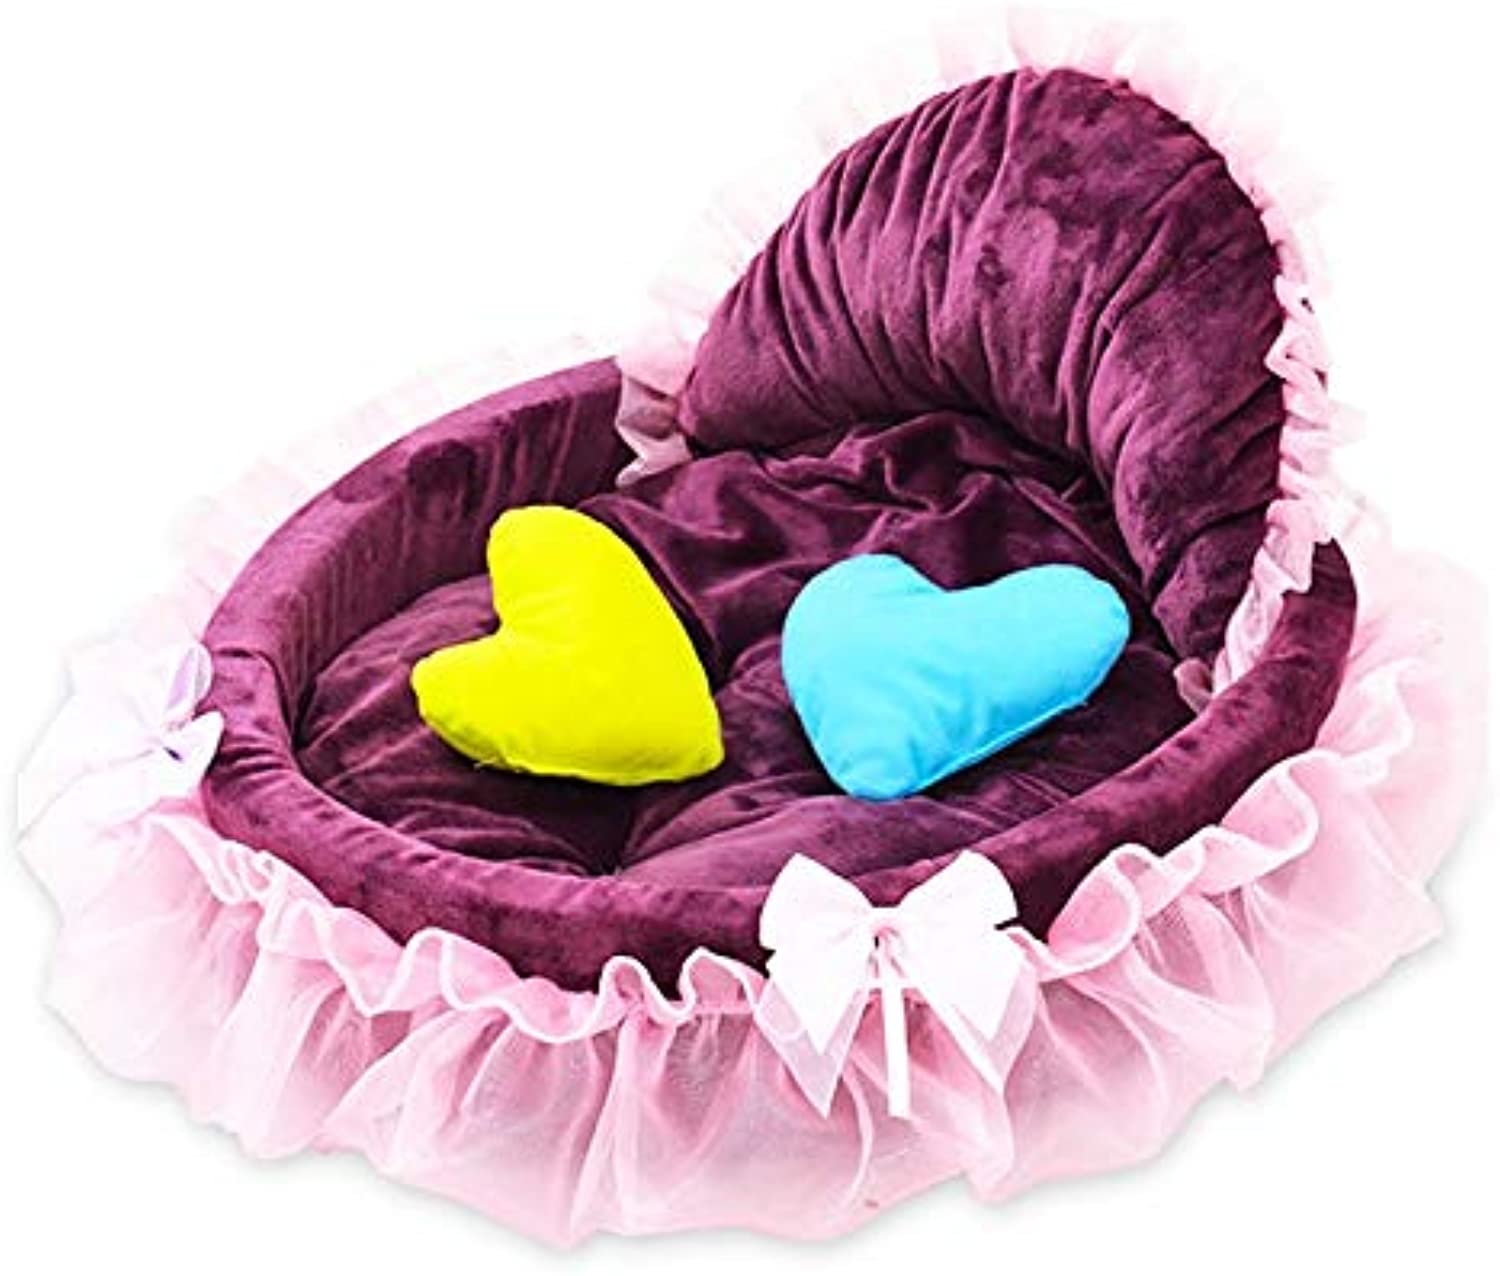 Oxltz Pet bed Pet Bed Lace Princess Pet Dog Kitten Bed Sofa Cushion Cat House Teddy Kennel Mediumsized Dog Four Seasons Universal Removable pet fusion large bed (color   Purplebig)